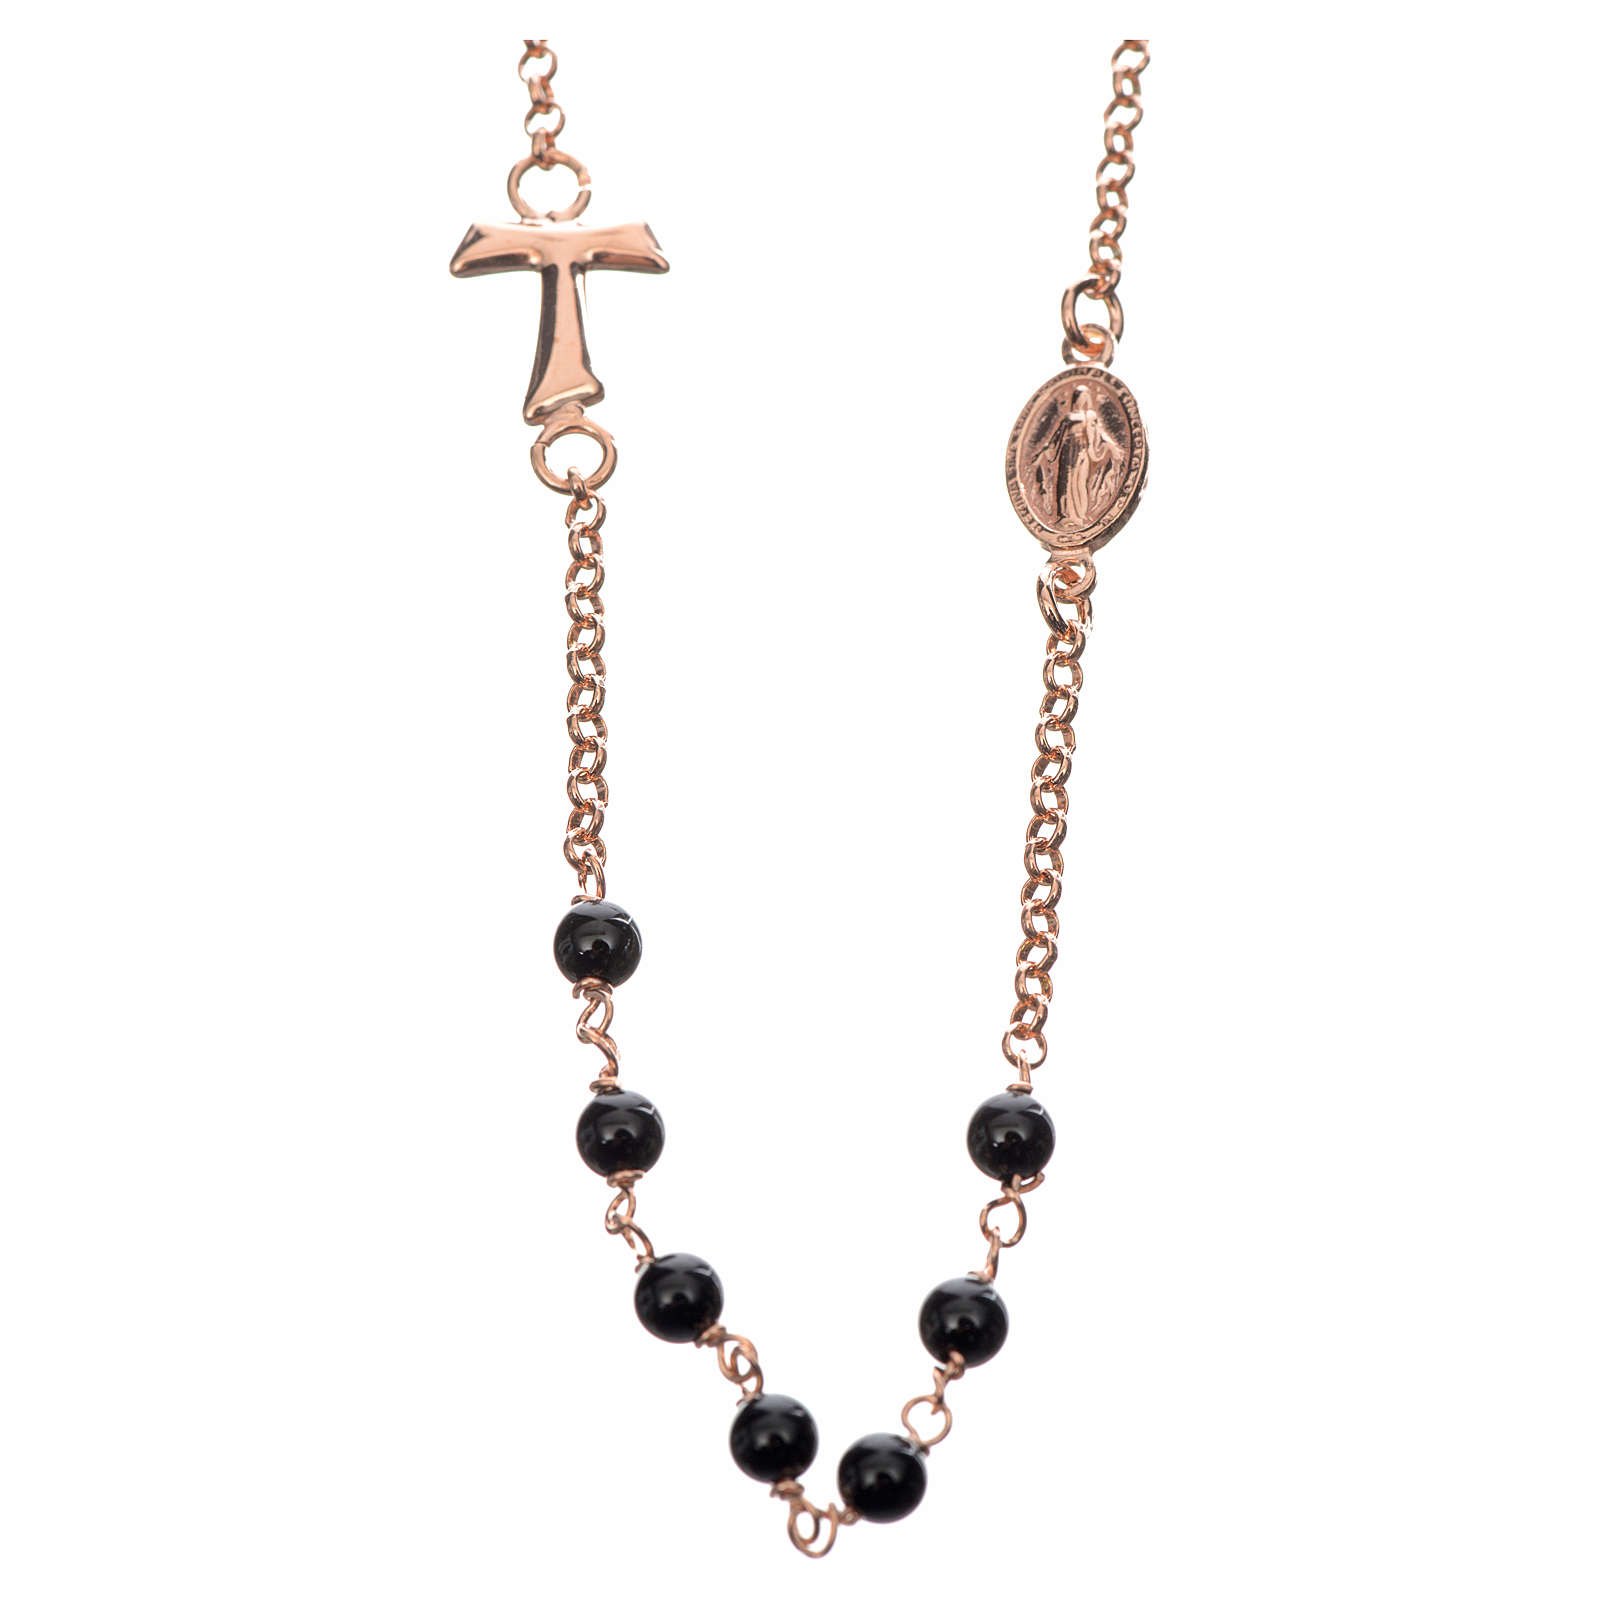 Silver necklace with Tau cross and black pearls, MATER jewels 4